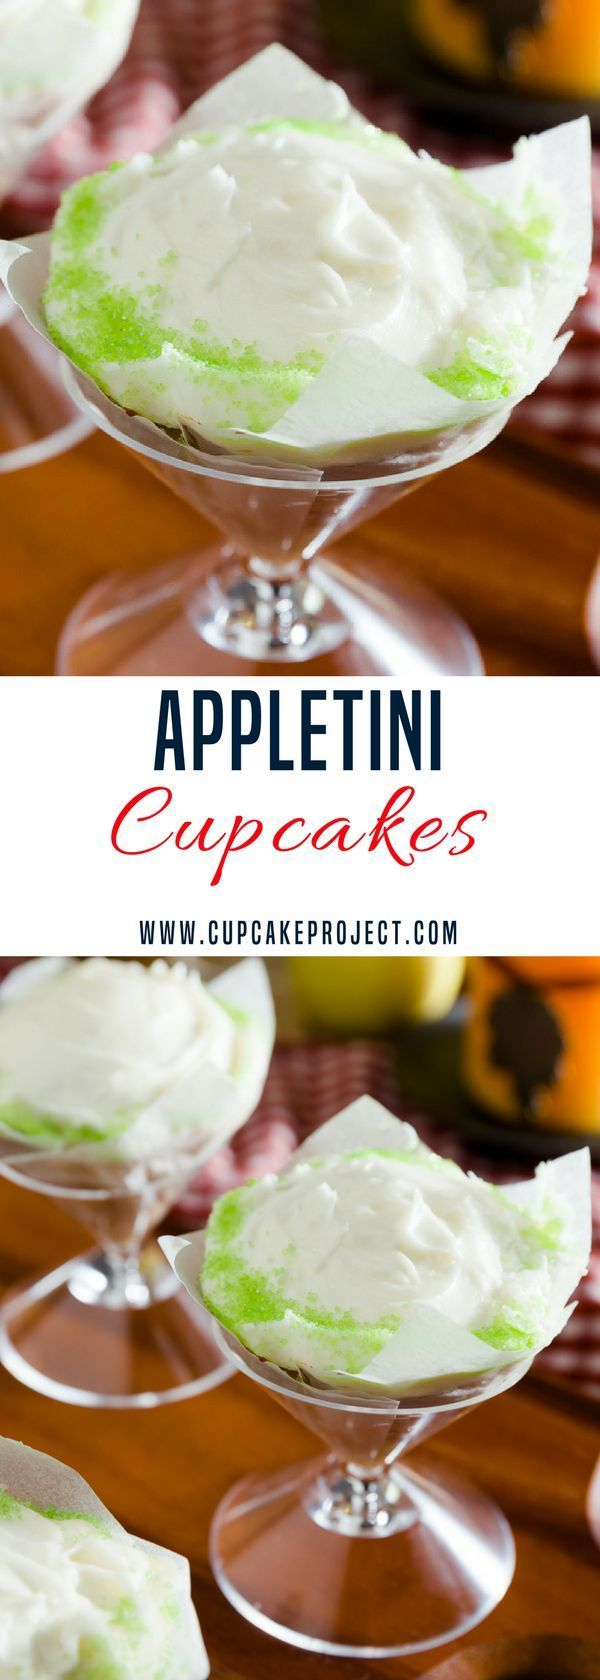 Cheers with this awesome cupcake recipe- the Appletini Cupcakes! How fun is it to be able to cheers with a cupcake?! More easy and from scratch baking recipes from #CupcakeProject #cupcake #food